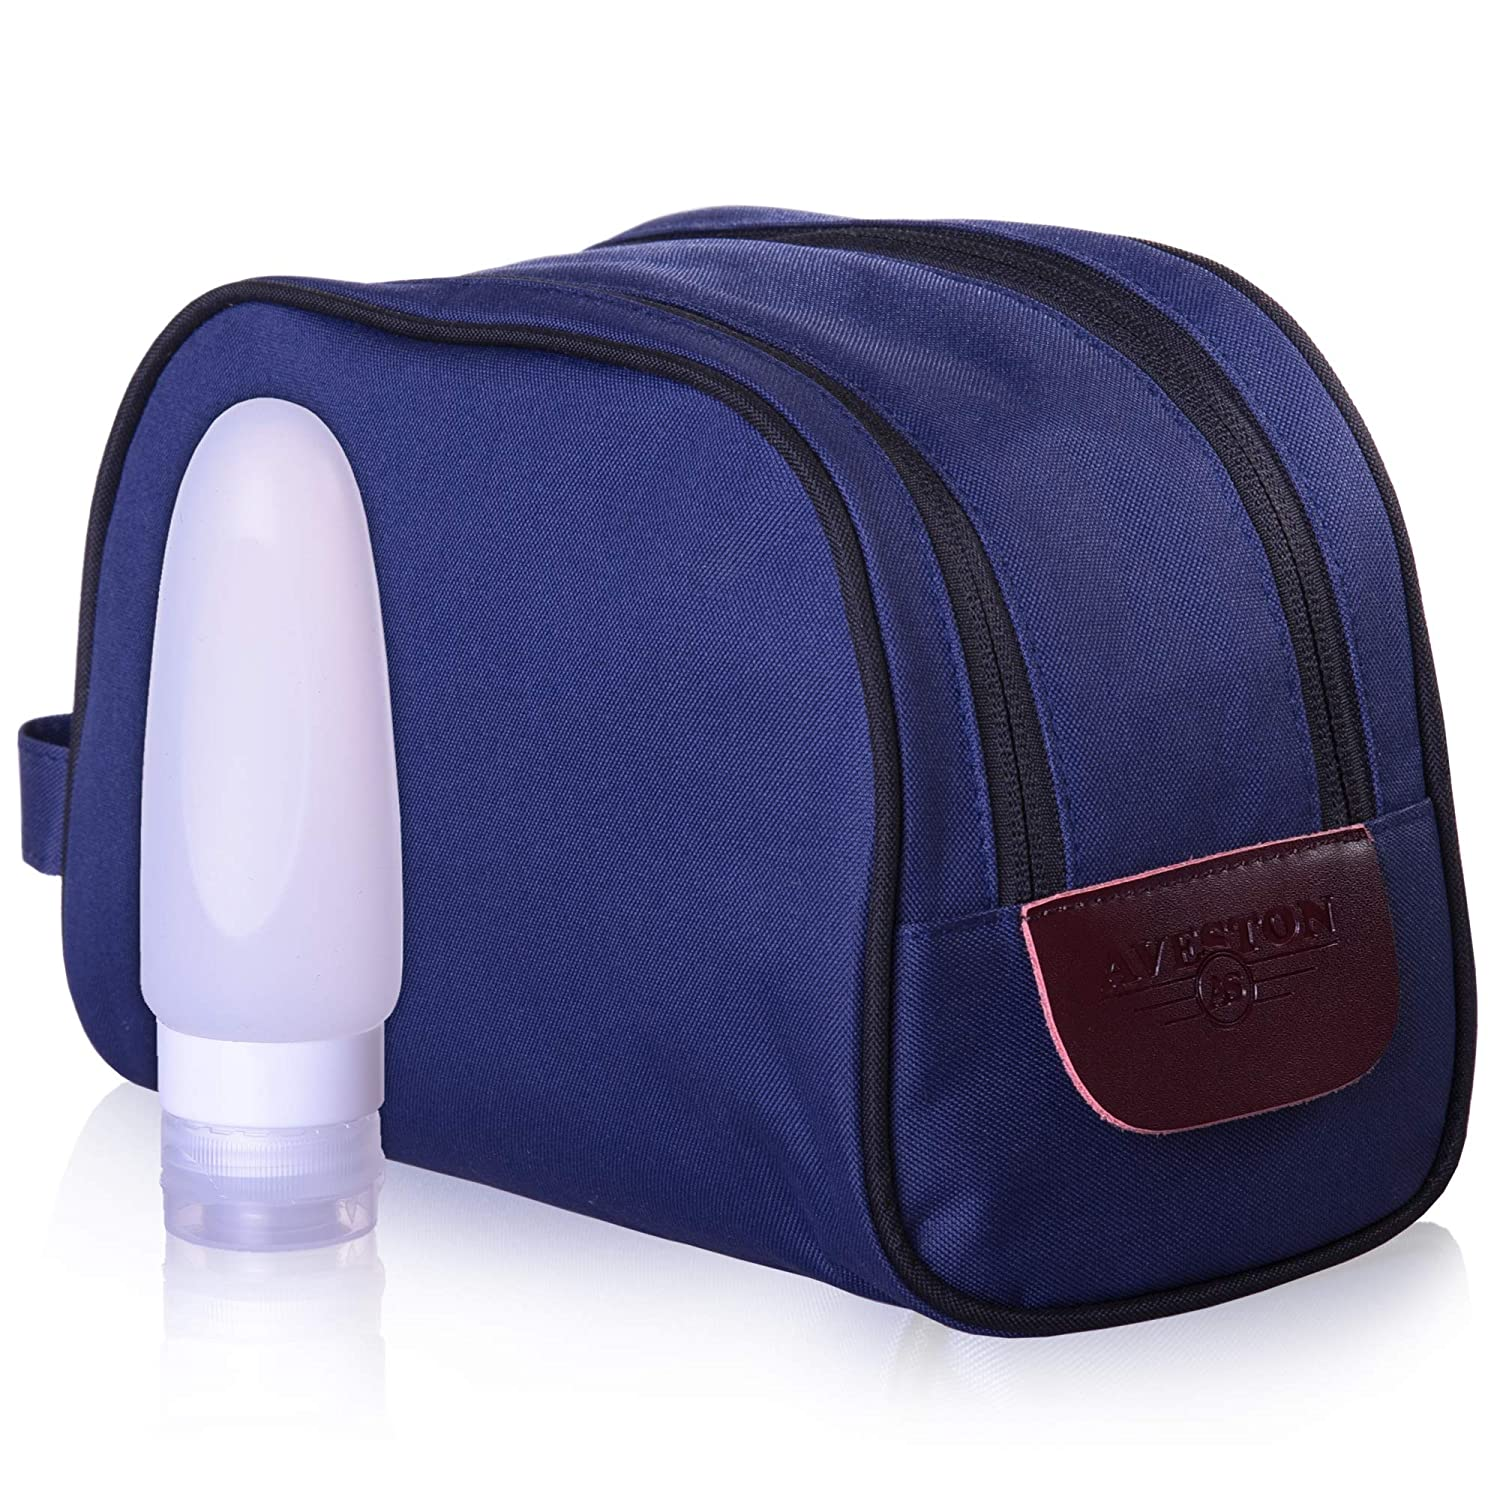 Amazon.com   Travel Toiletry Bag for Men - Dopp Kit - Waterproof Toiletry  Kit - Mens Travel Toiletries Bag Large - Blue - with Silicone Travel Bottle  - by ... 8b2ca490d4cd8